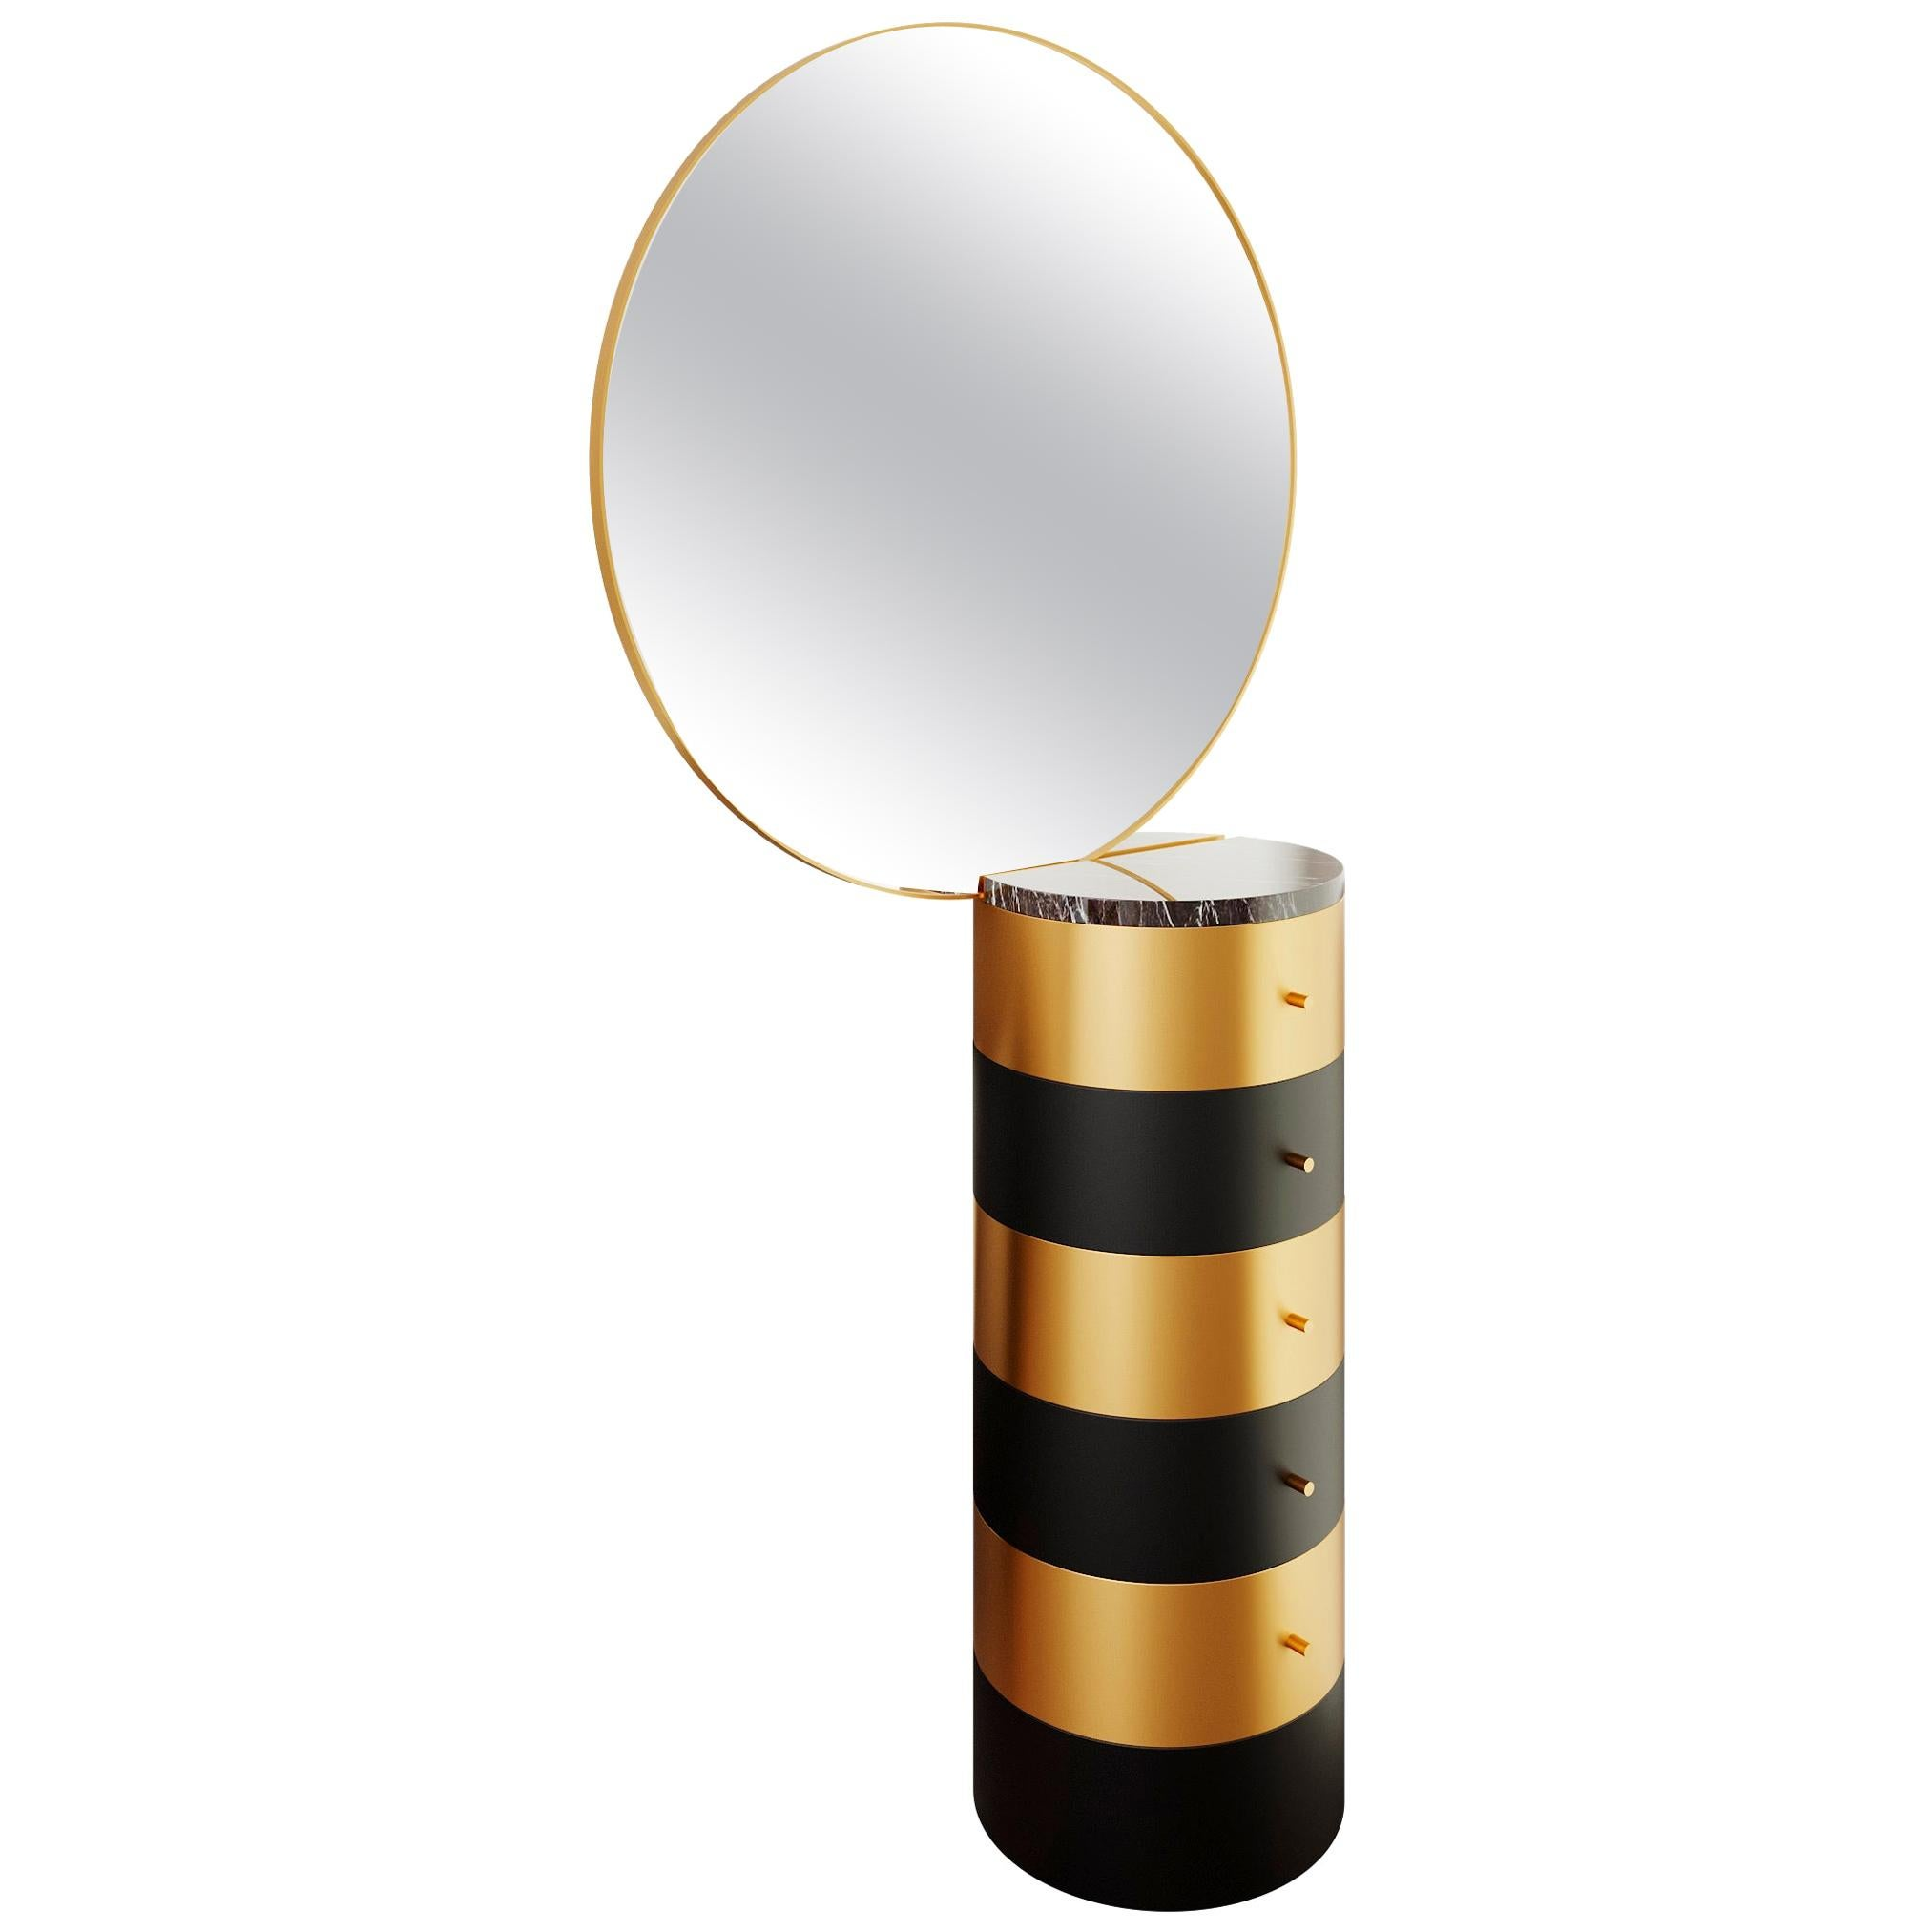 Strings Gold and Black Metal Vanity Table with Mirror by Nika Zupanc